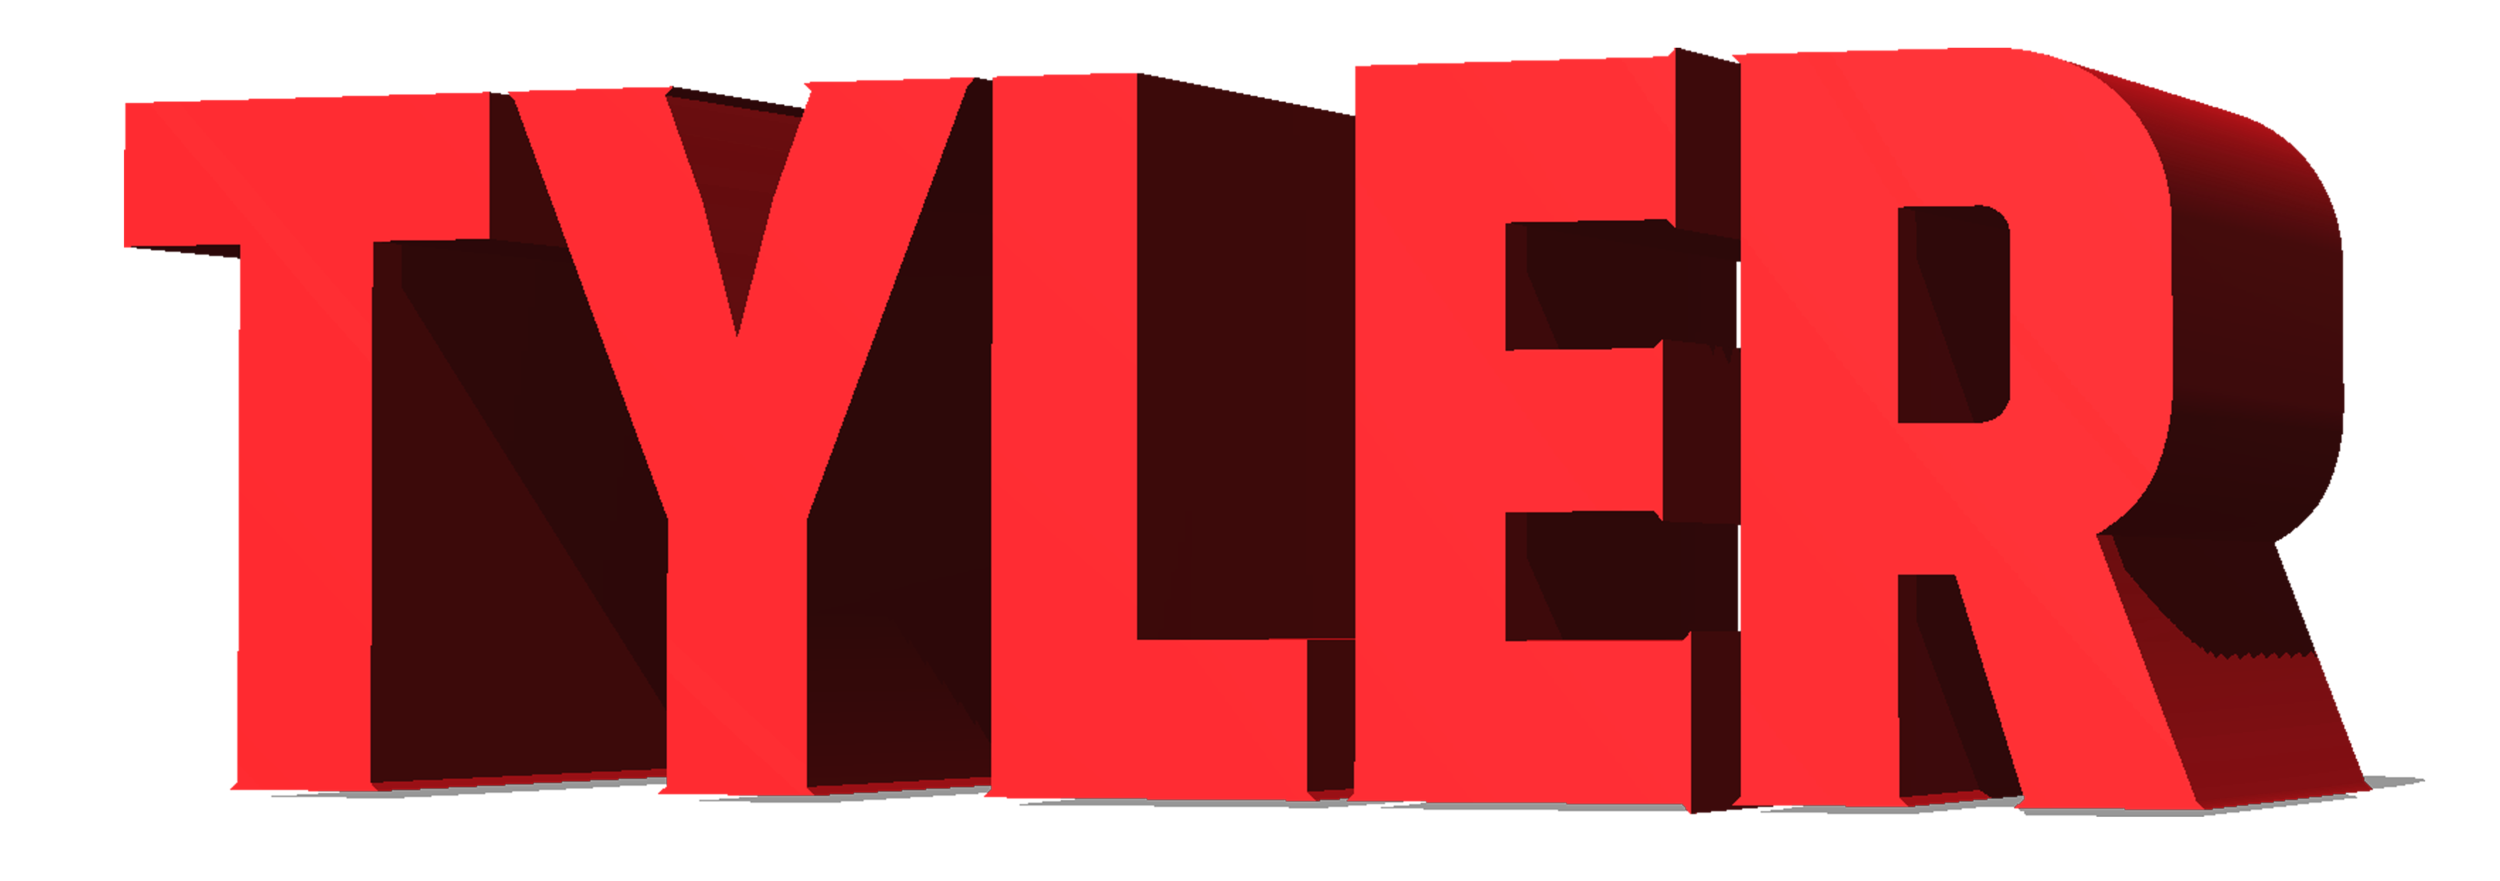 TY_Logo.png